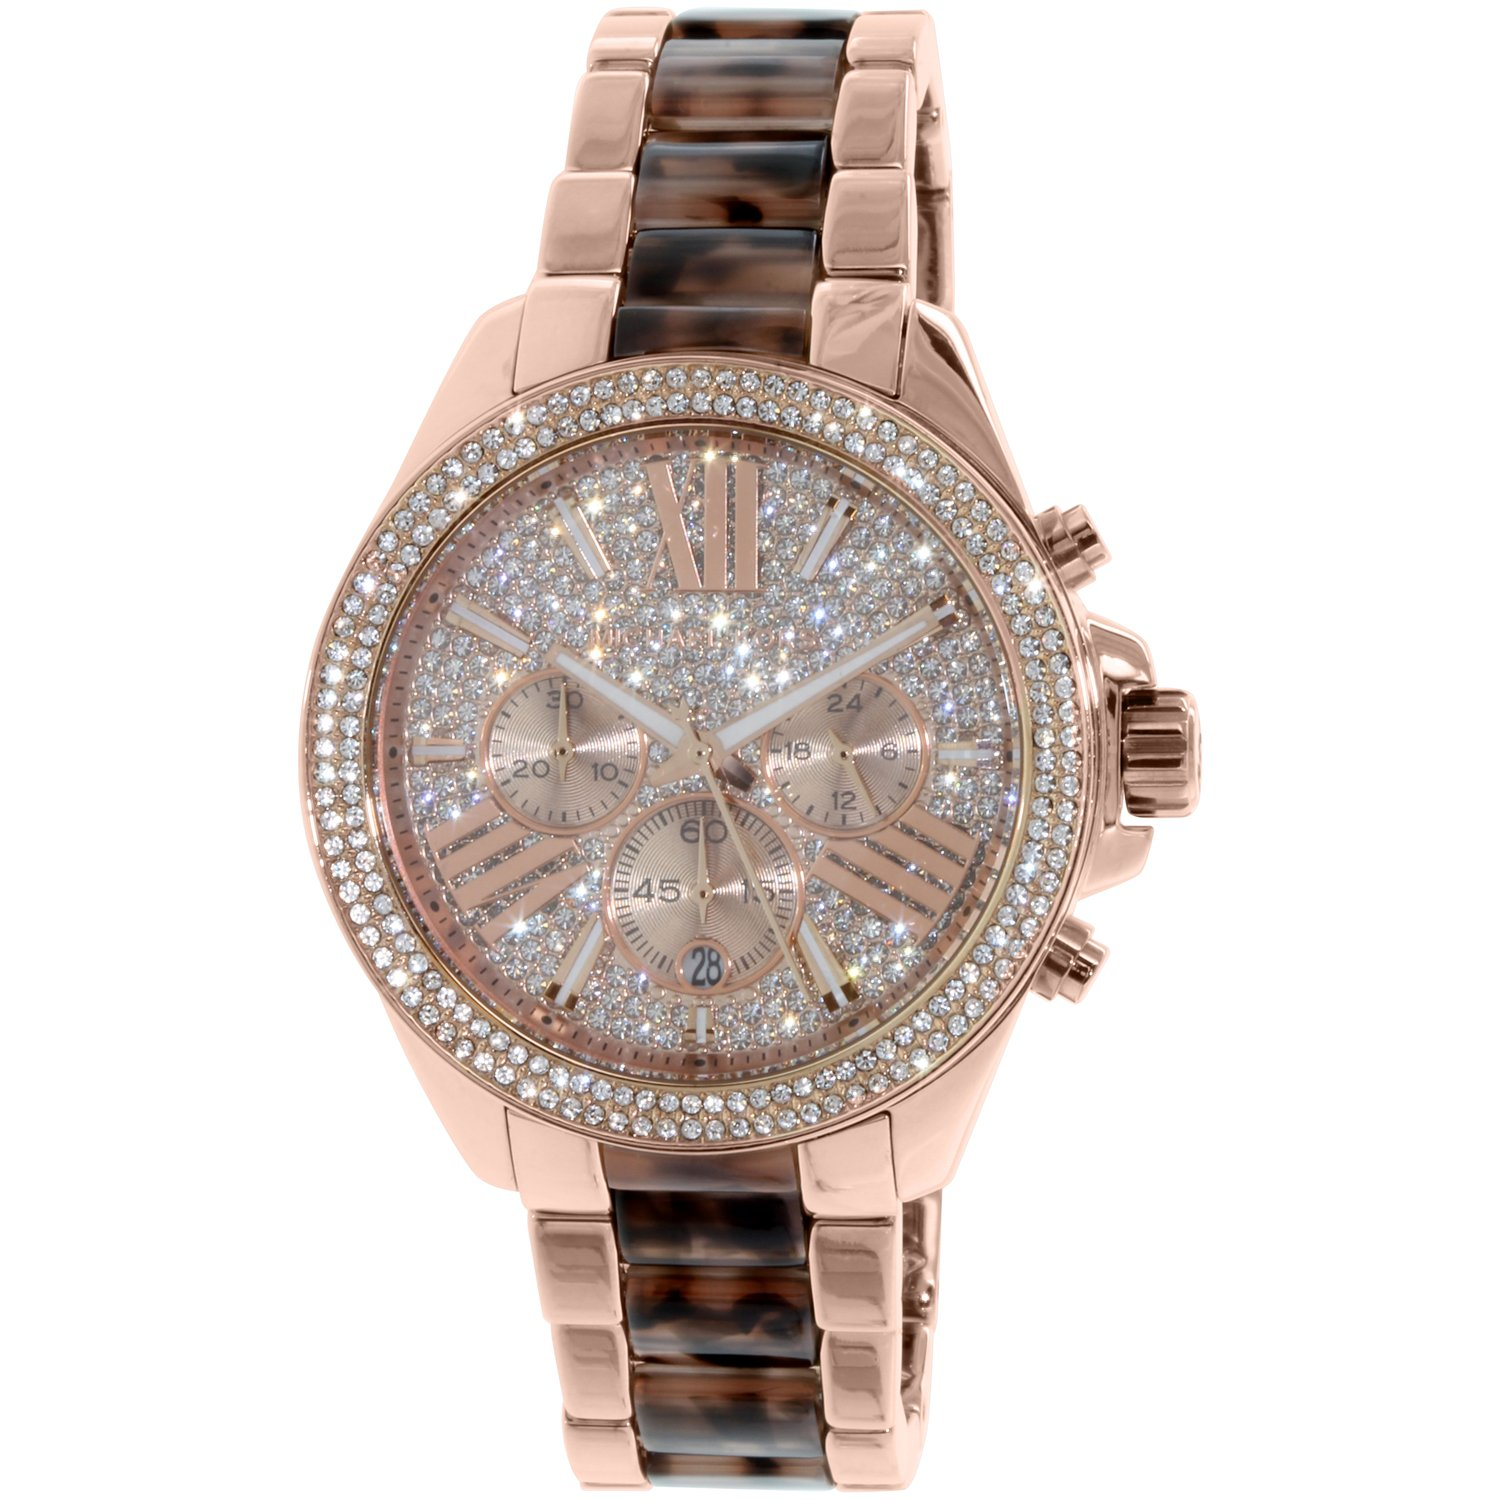 4d09298f82e2 Michael Kors Women s Wren MK6159 Rose Gold Stainless-Steel Quartz Fashion  Watch